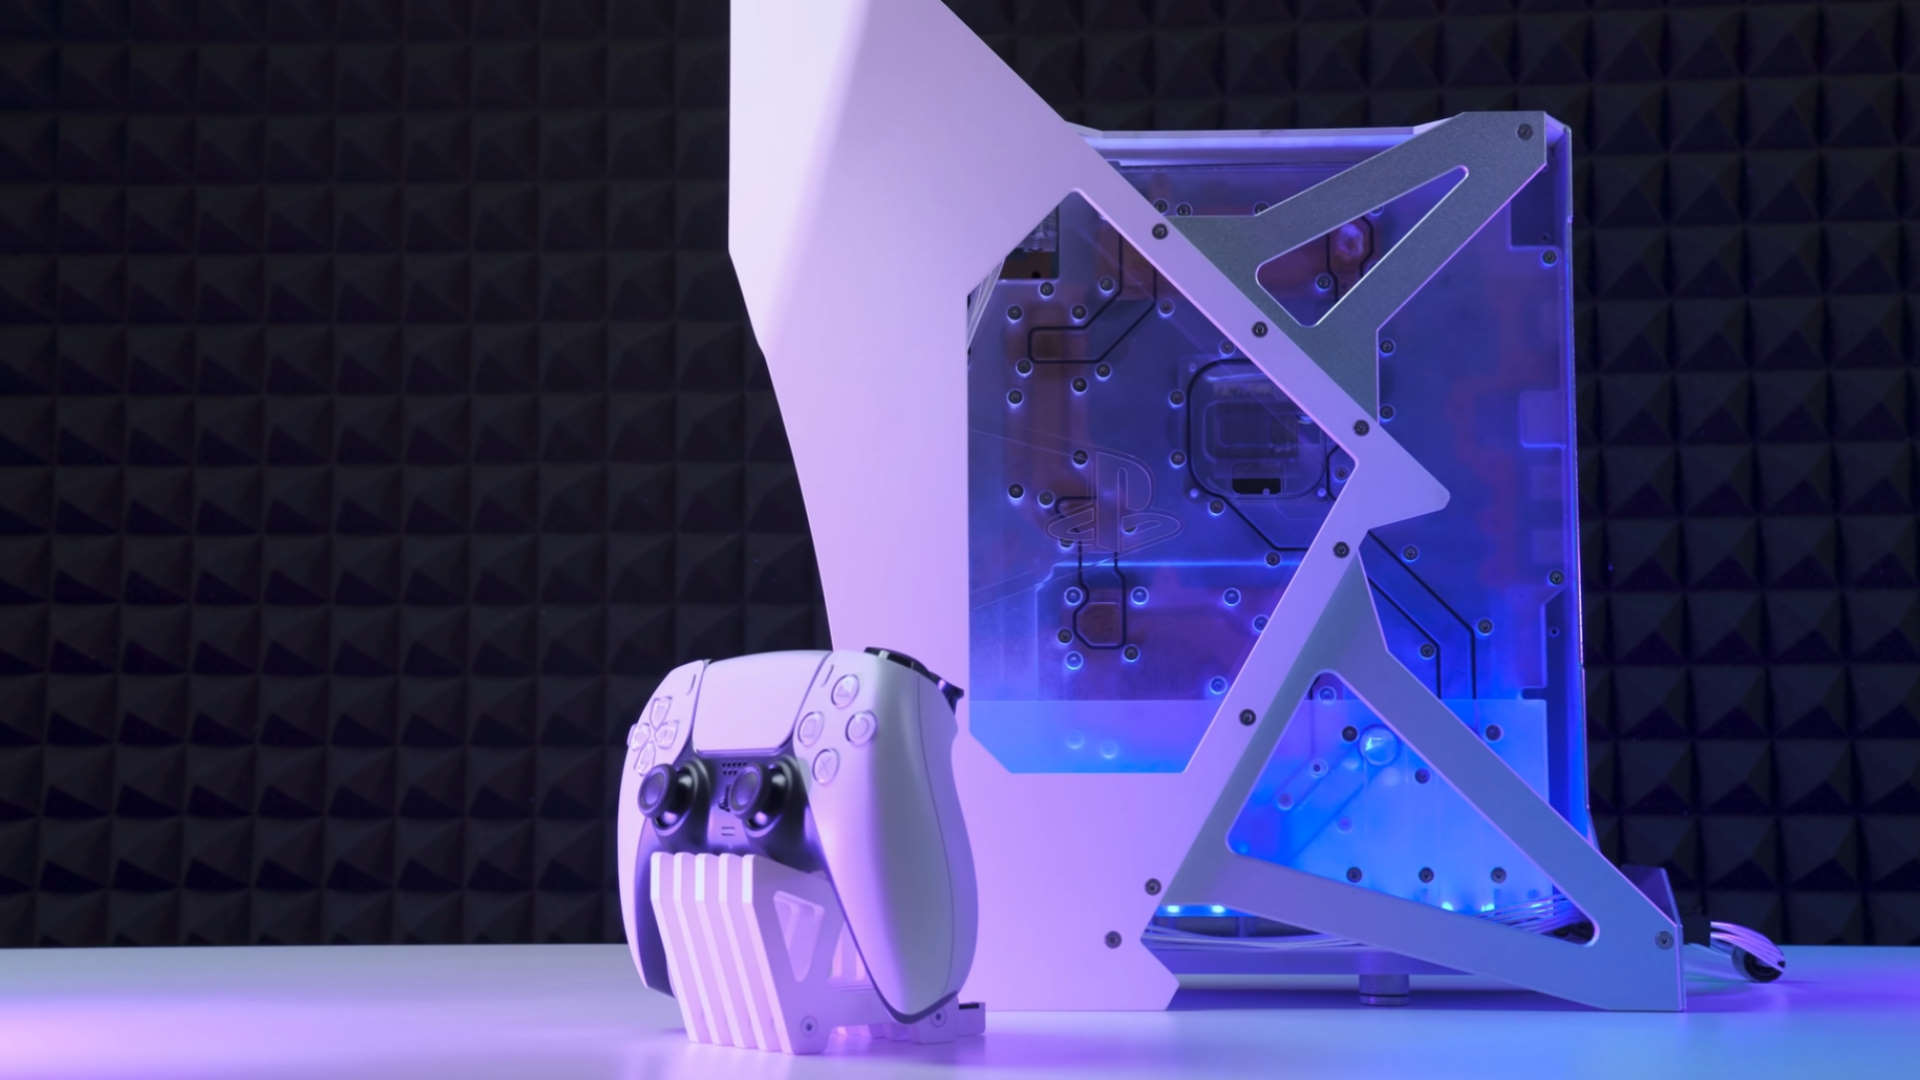 This PS5 comes with custom liquid cooling and is utterly gorgeous